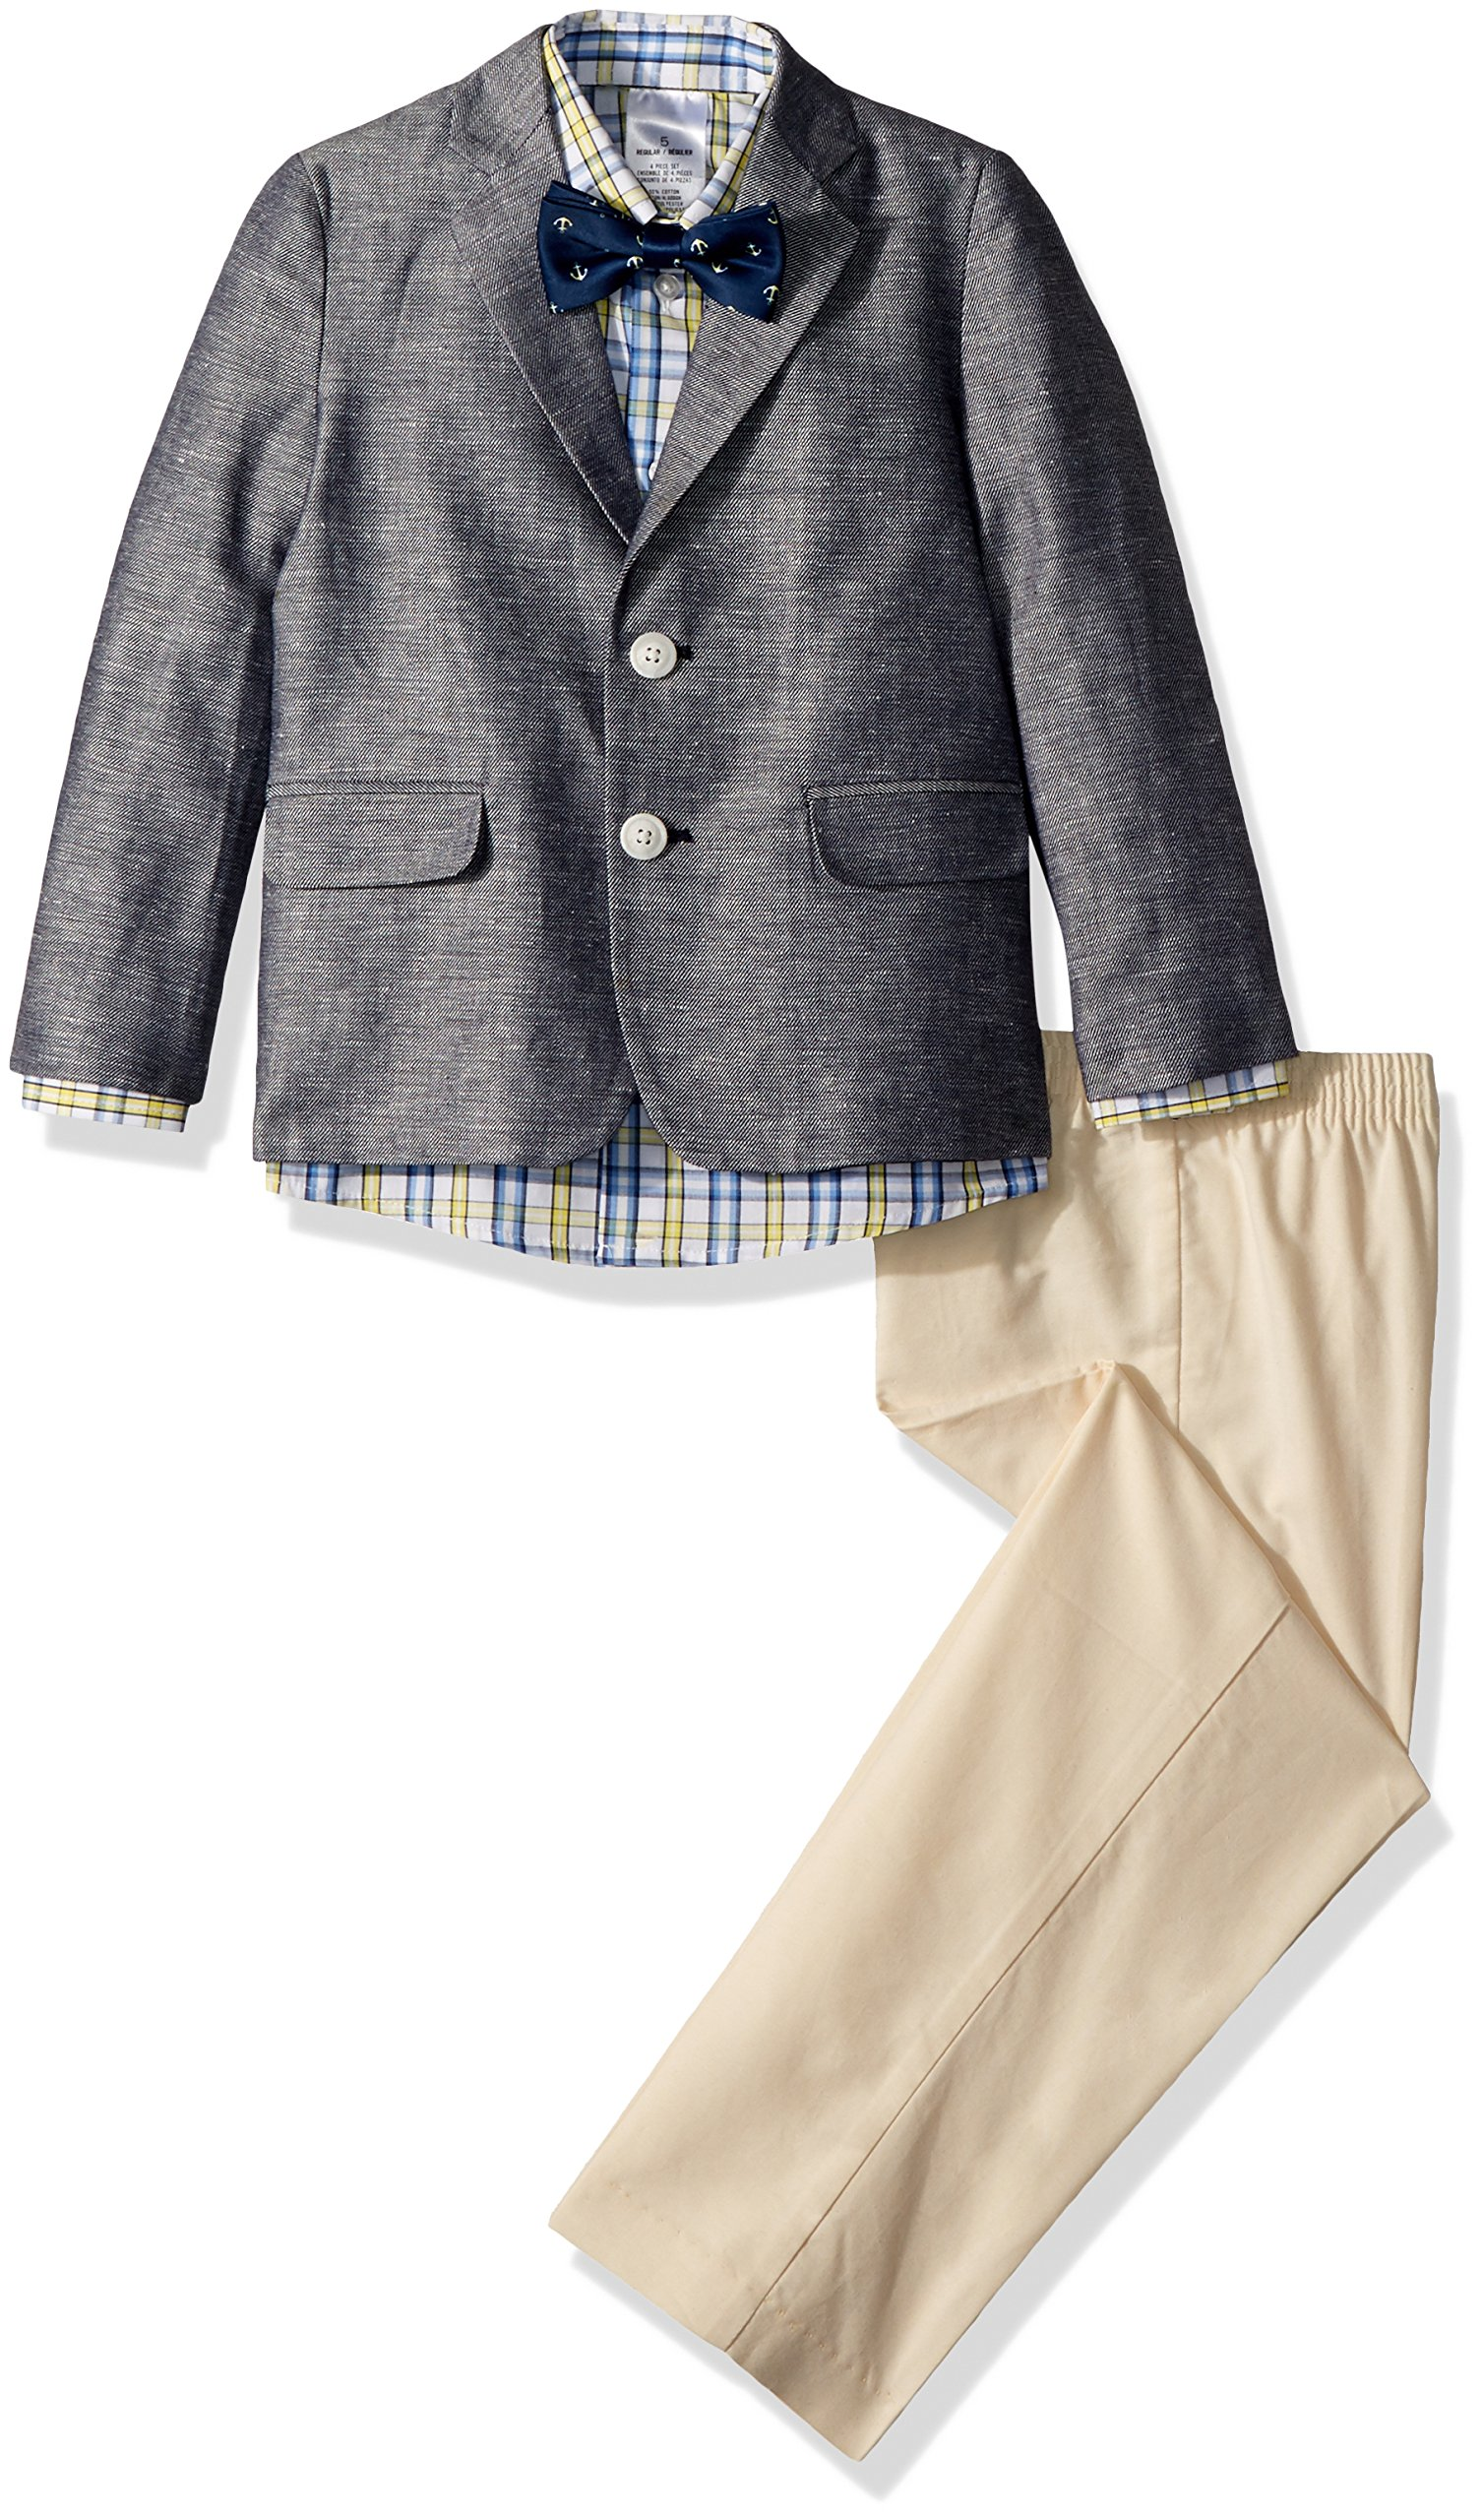 Nautica Toddler Boys' Suit Set with Jacket, Pant, Shirt, and Bow Tie, Denim Peacoat, 4T/4 by Nautica (Image #1)